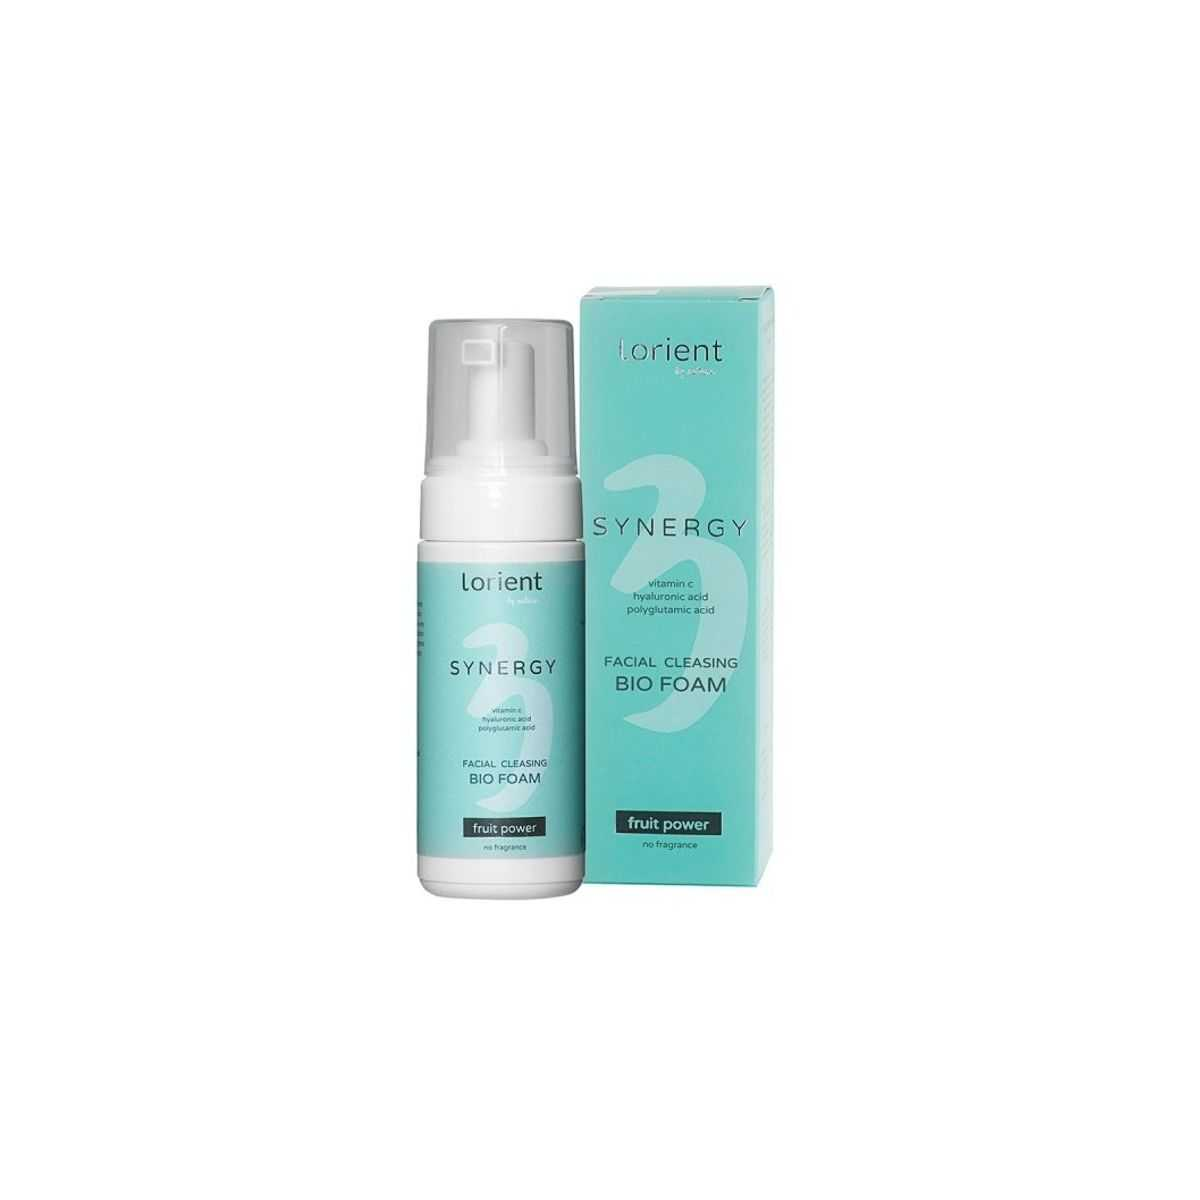 Synergy facial cleansing foam